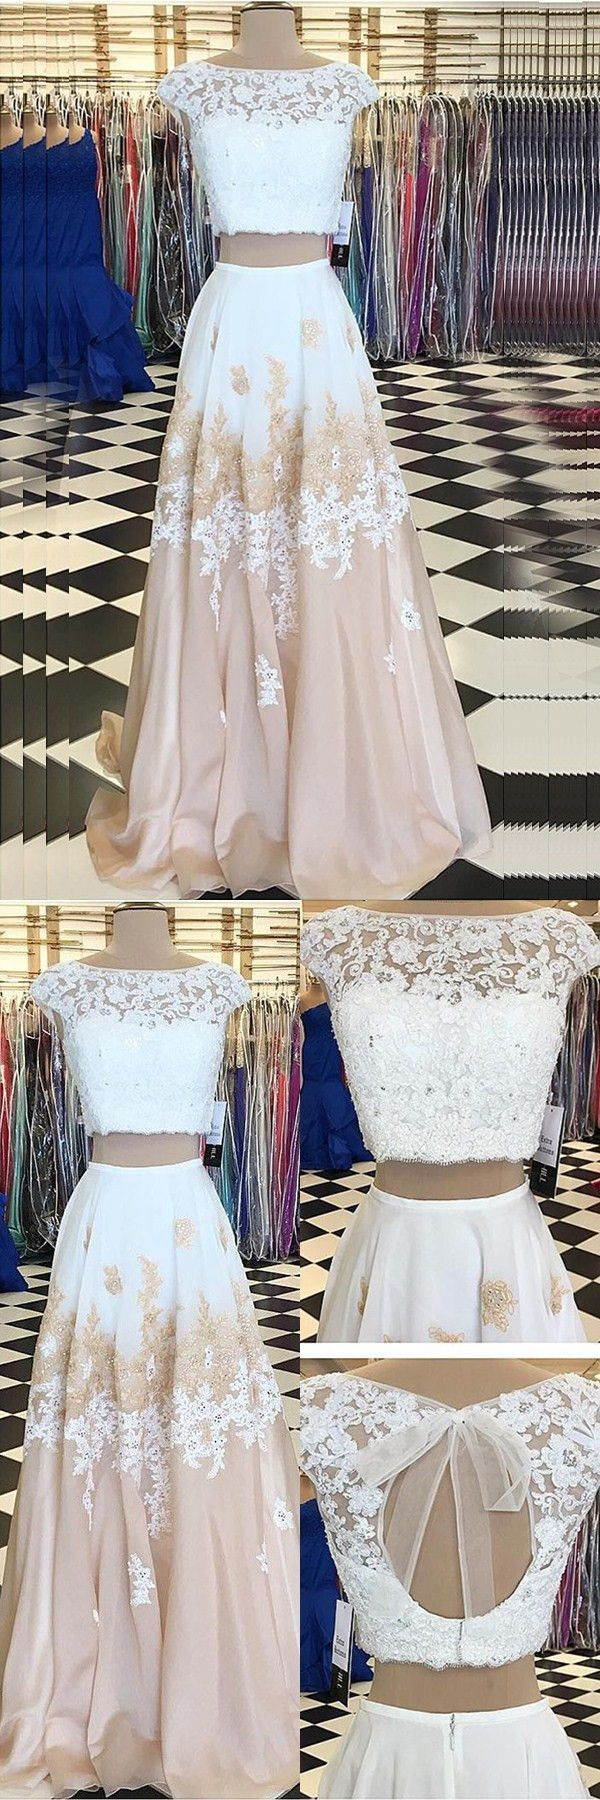 prom dresses, champagne prom dresses, cute 2 pieces party dresses, prom dresses with appliques, cheap cap sleeves open back evening gowns